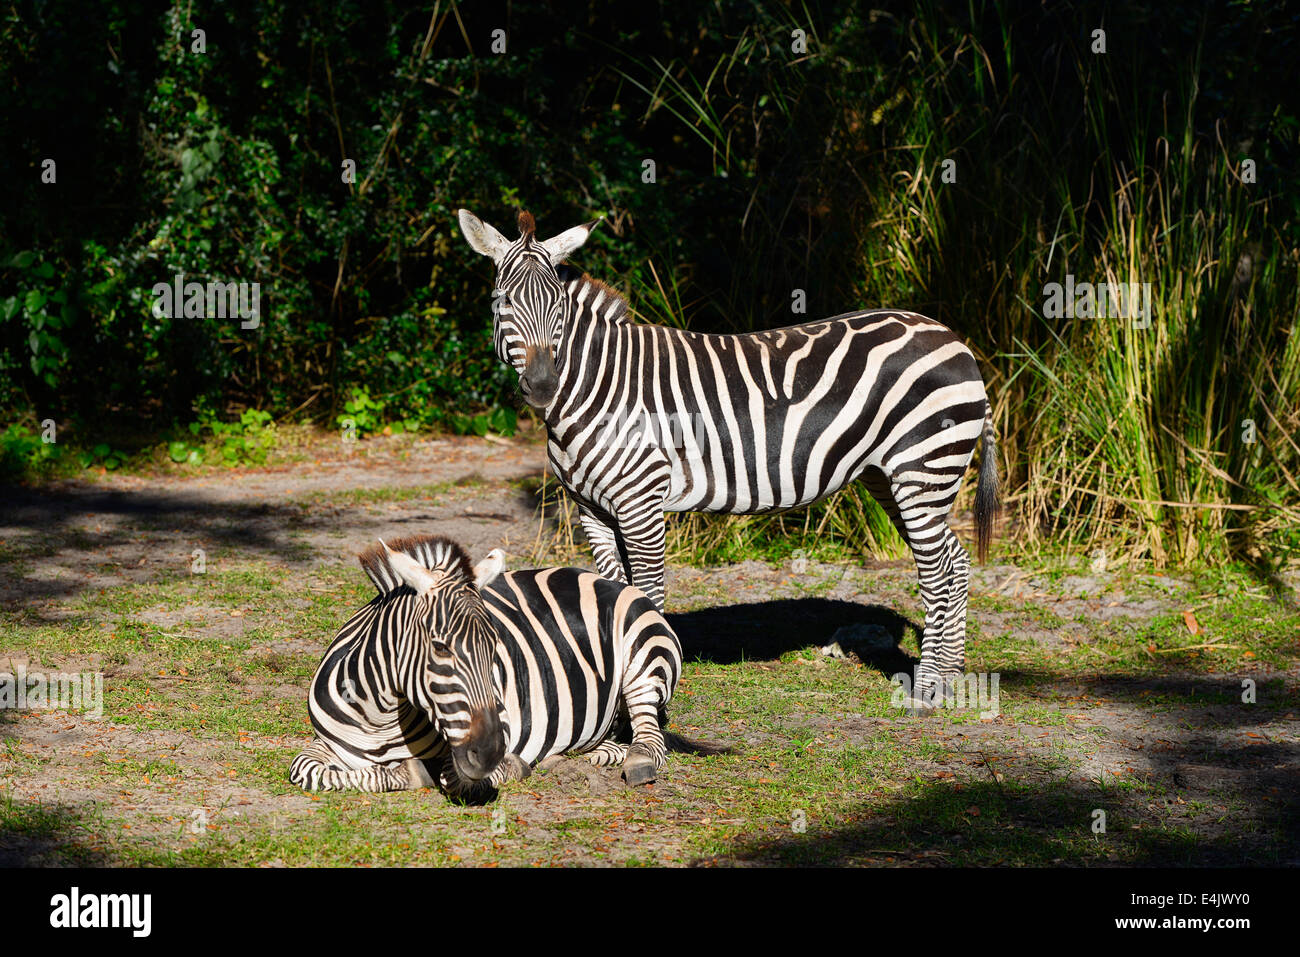 Zebra, Zebras, Animal Kingdom, Disney World, Orlando Florida - Stock Image